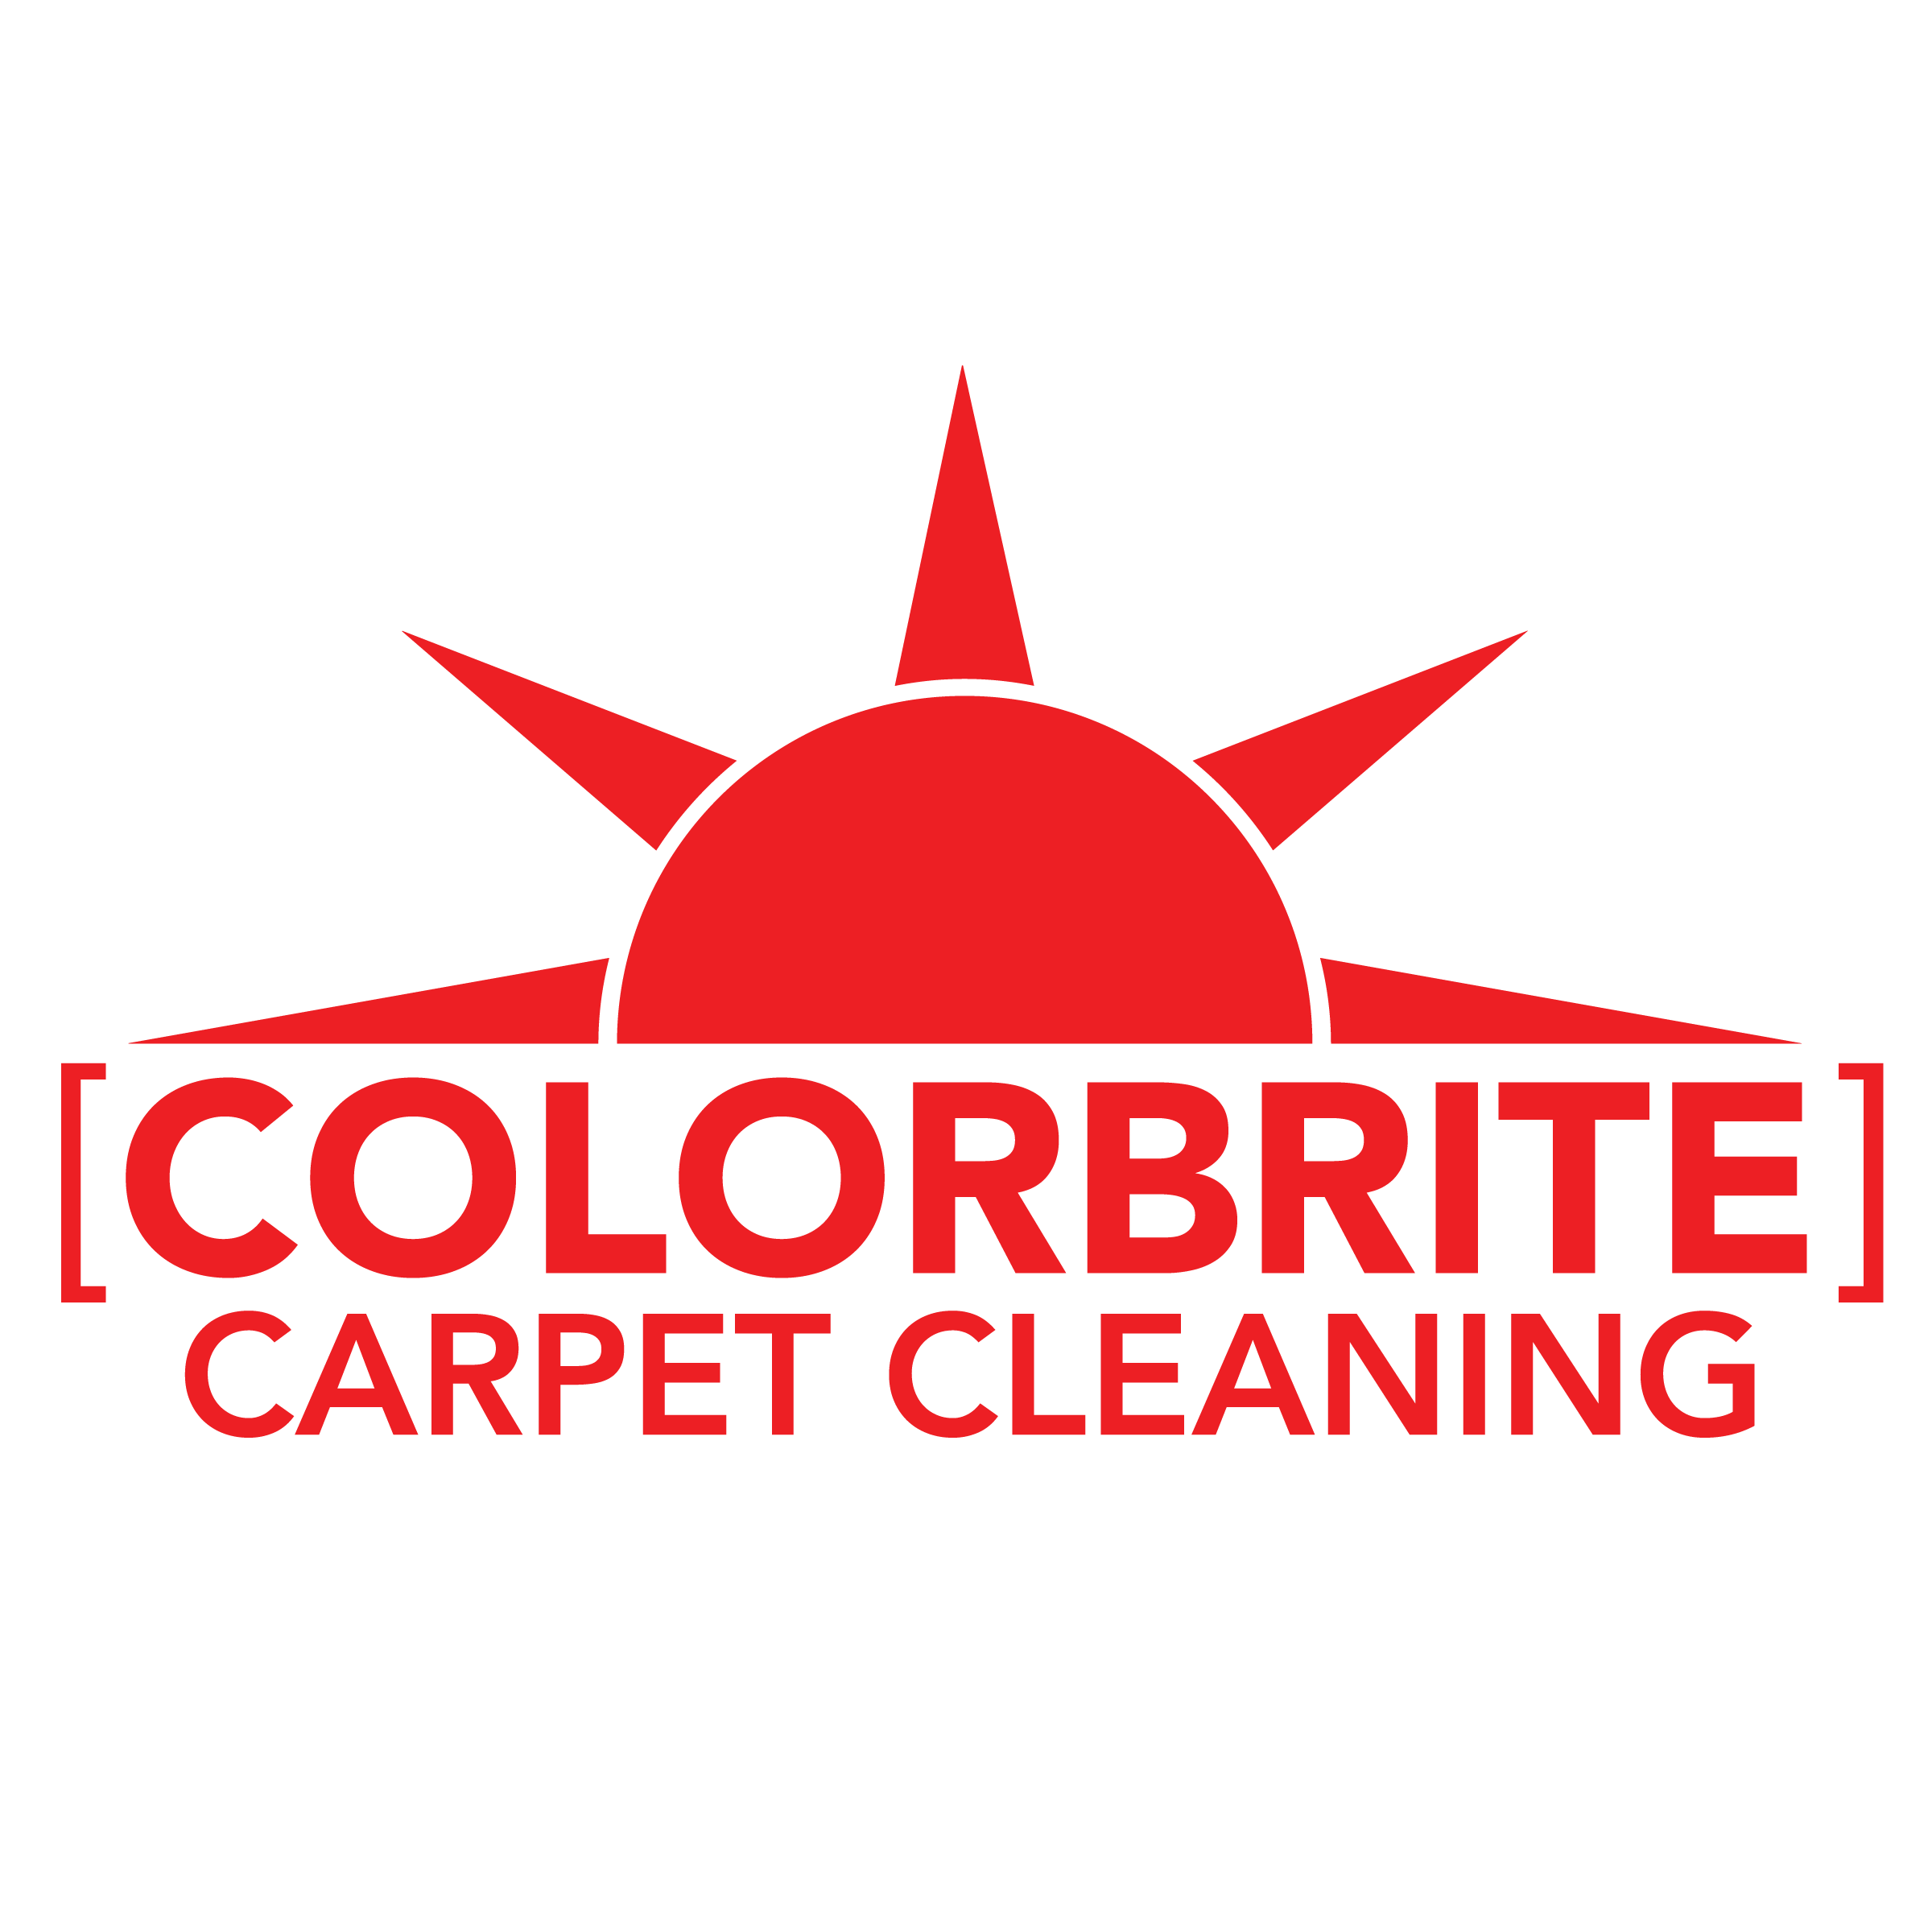 Colorbrite carpet cleaning - Goldsboro, NC - Carpet & Upholstery Cleaning